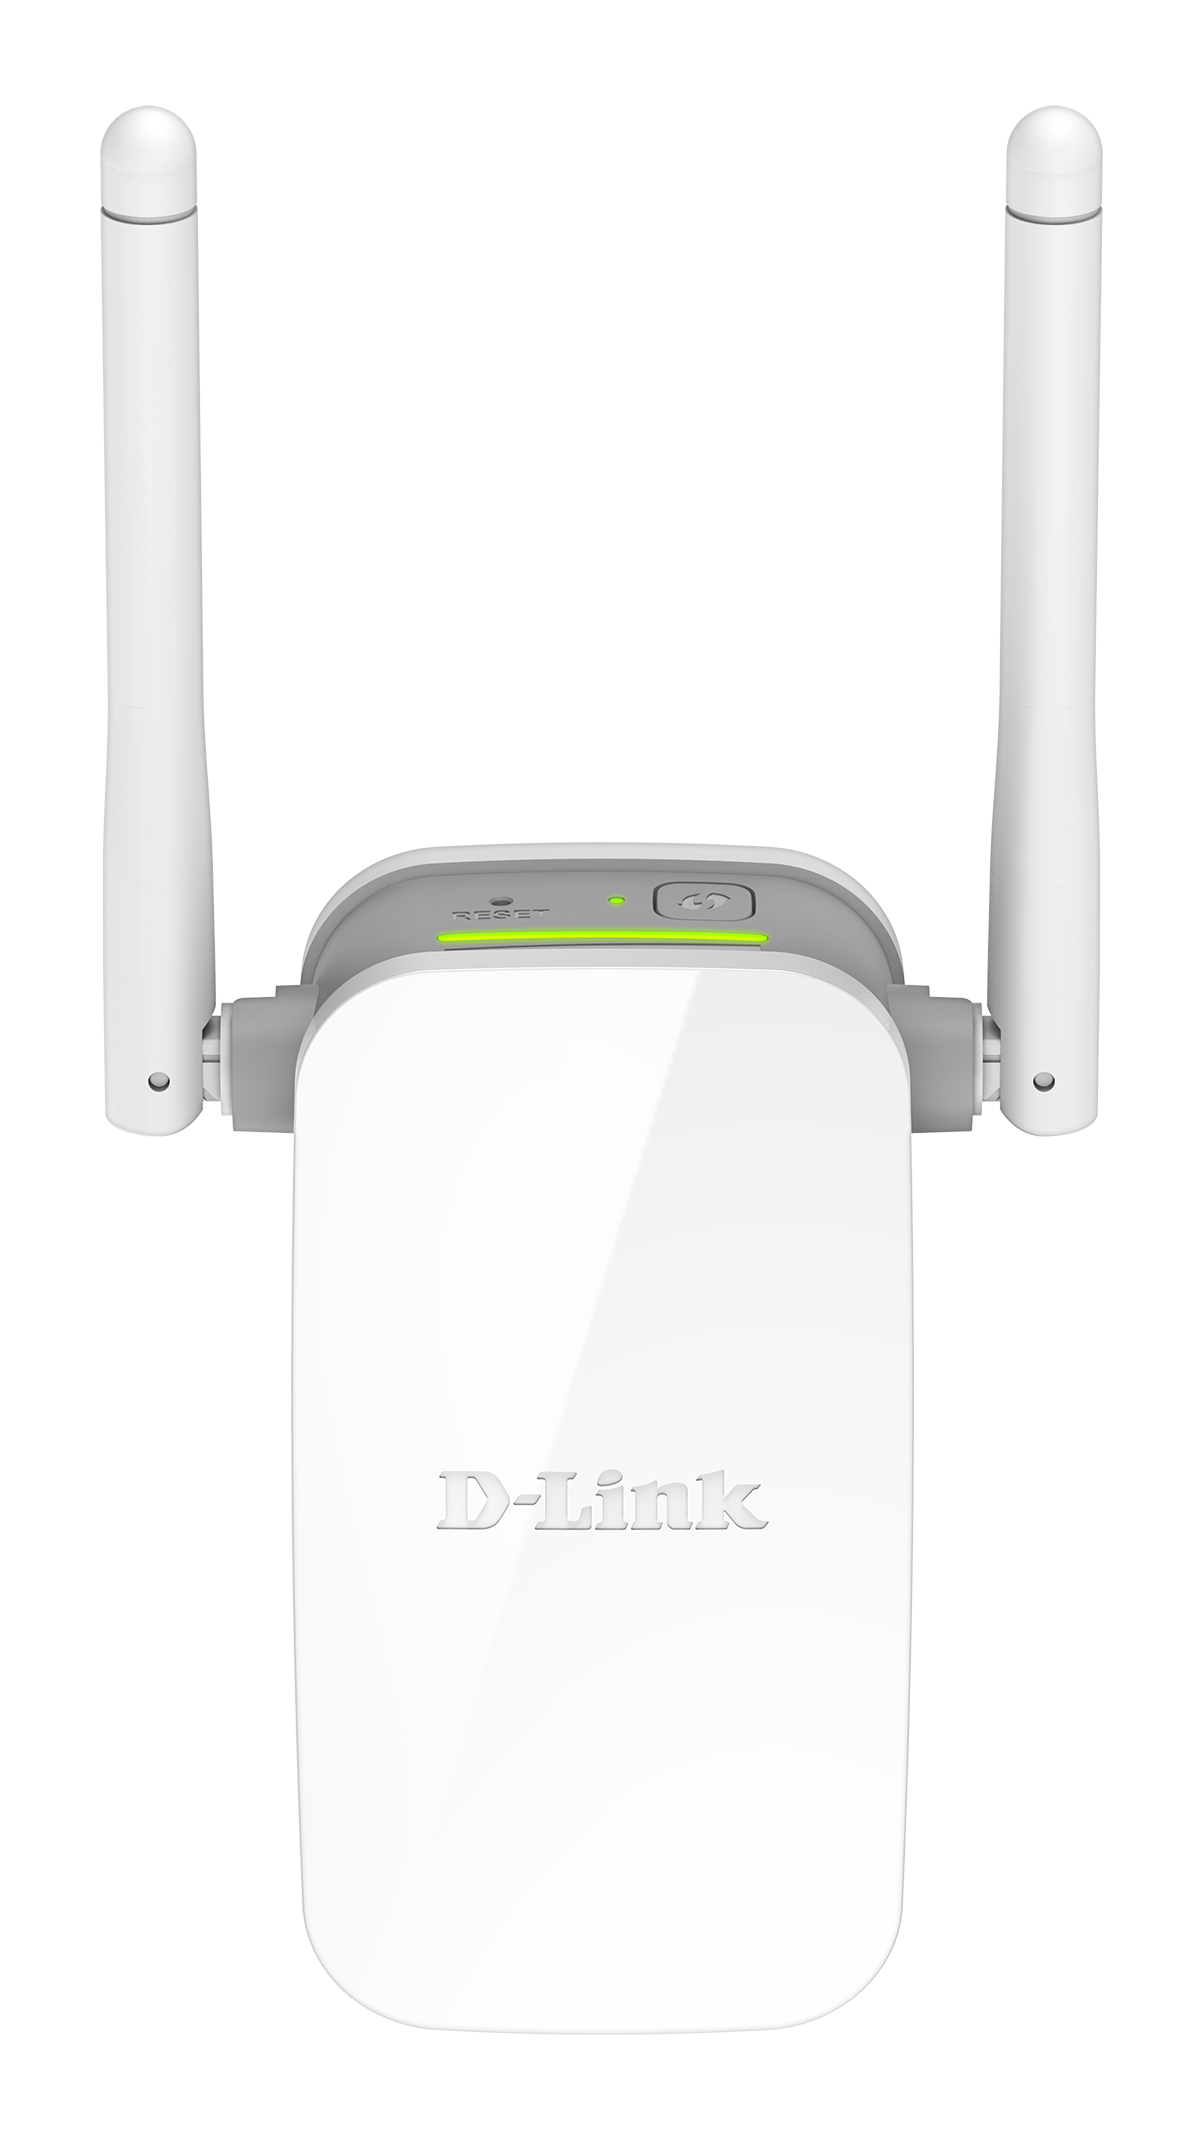 D-LINK DHP-W306AV WIRELESS EXTENDER TREIBER WINDOWS XP